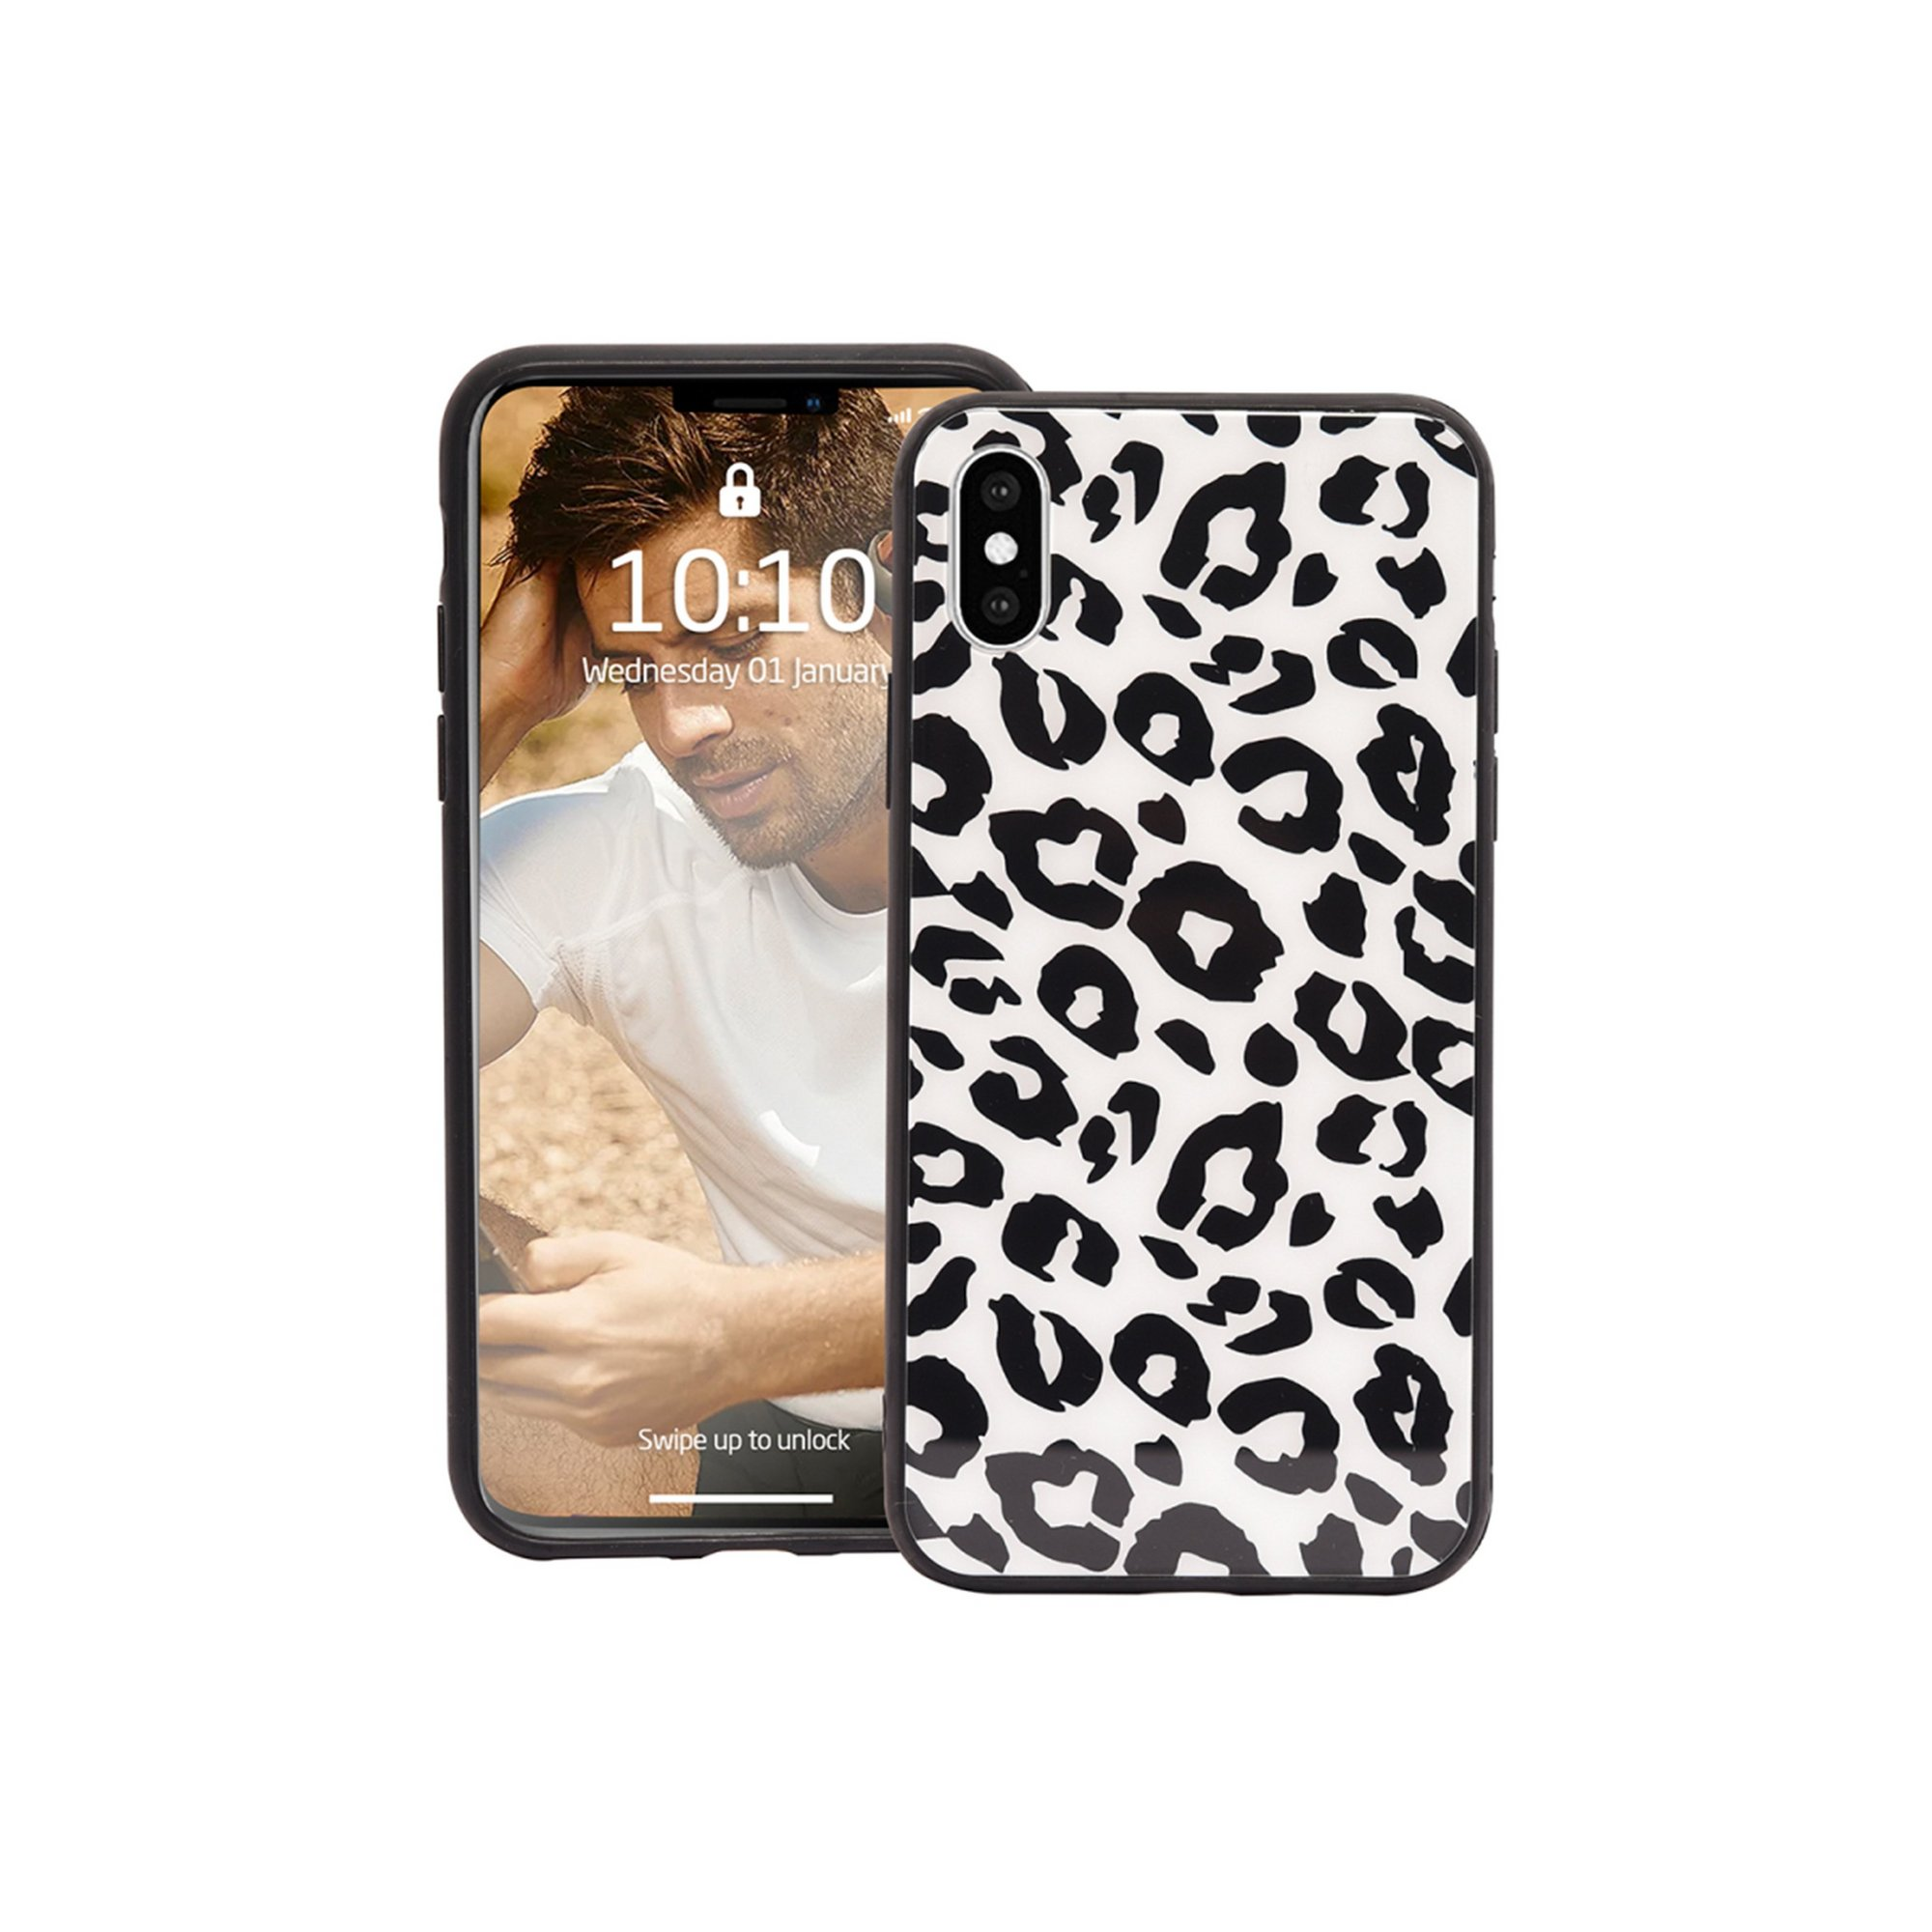 Image of Groov-e Design Case for iPhone X/XS - Animal